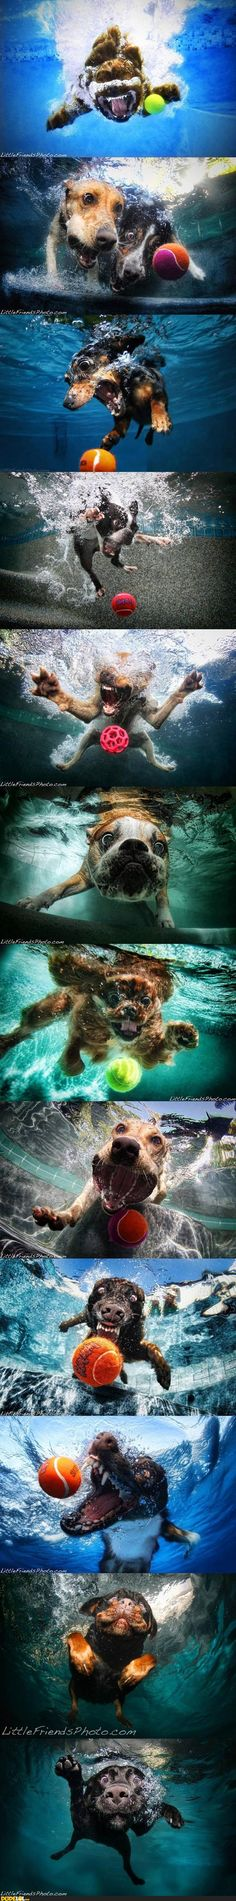 ball, dog photos, funny dogs, silly dogs, underwater dogs, dog photography, puppi, dog pictures, animal